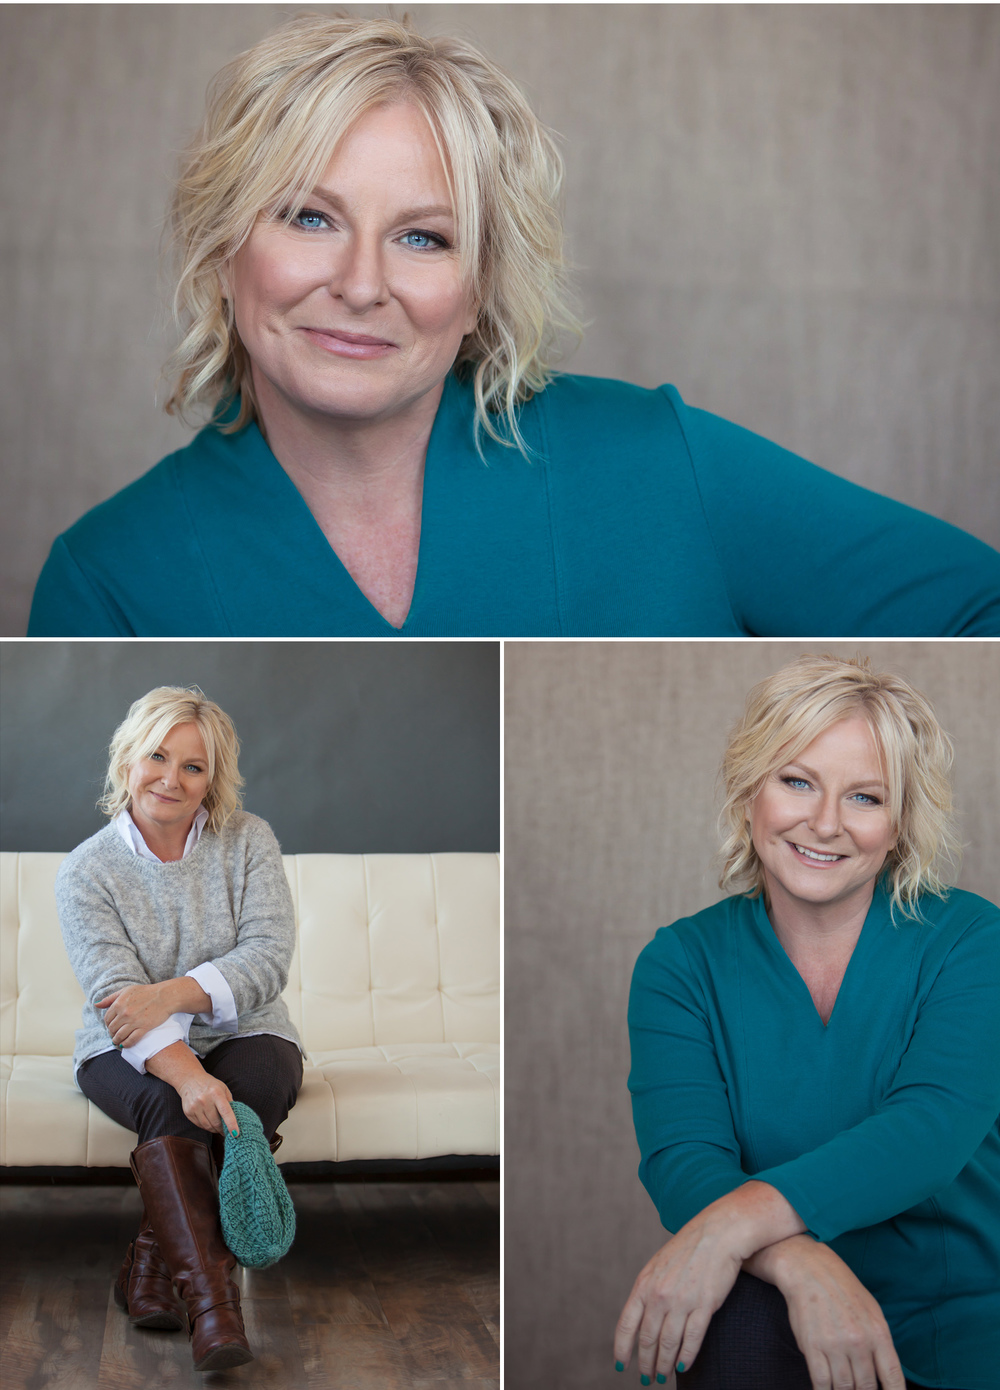 Crystal Blue Eyes featured beautifully in an Ultimate Personal Branding Portrait Session, with Denver Photographer Jennifer Koskinen of Merritt Portrait Studio